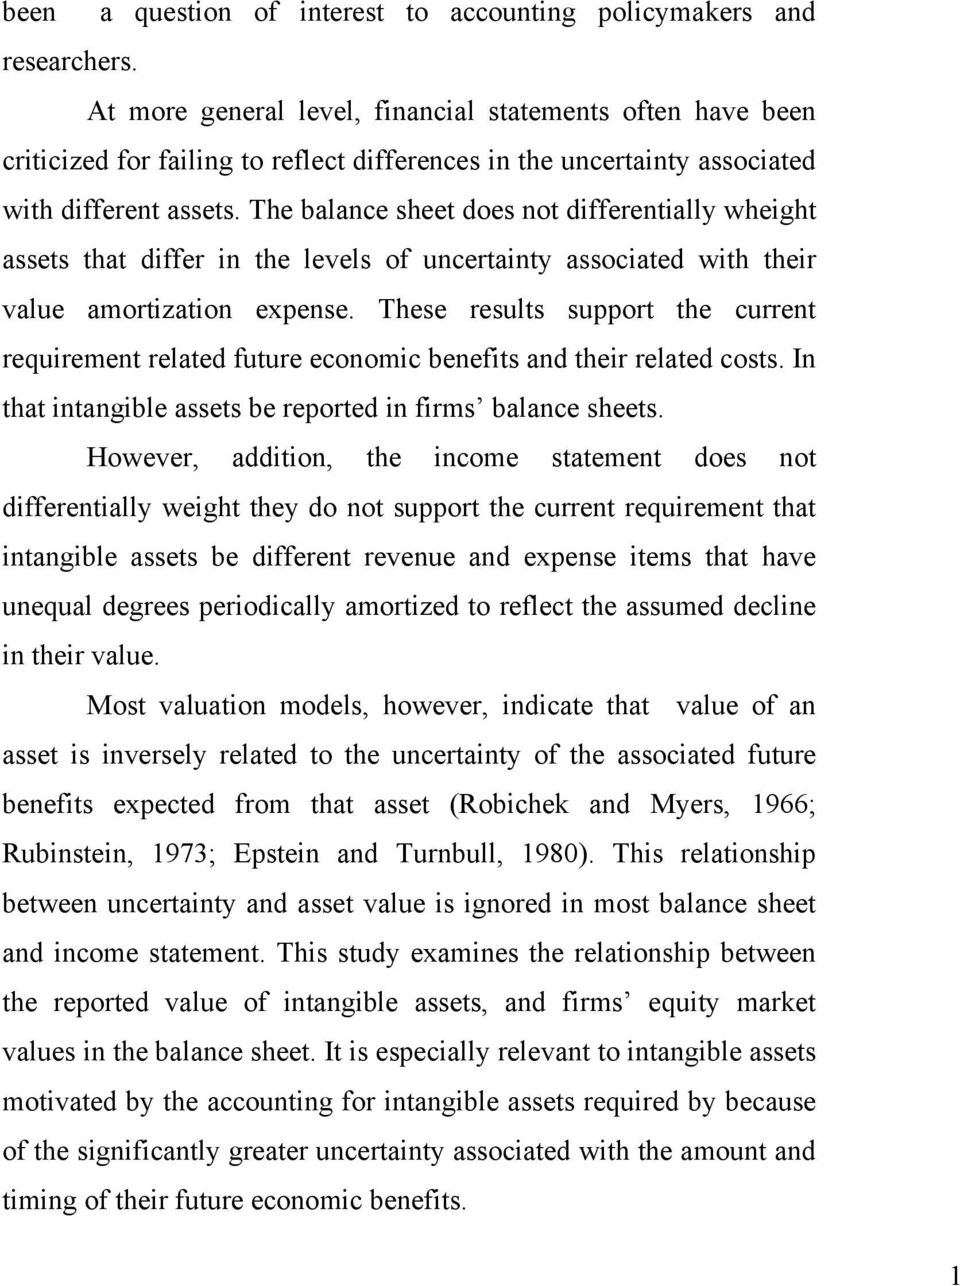 The balance sheet does not differentially wheight assets that differ in the levels of uncertainty associated with their value amortization expense.